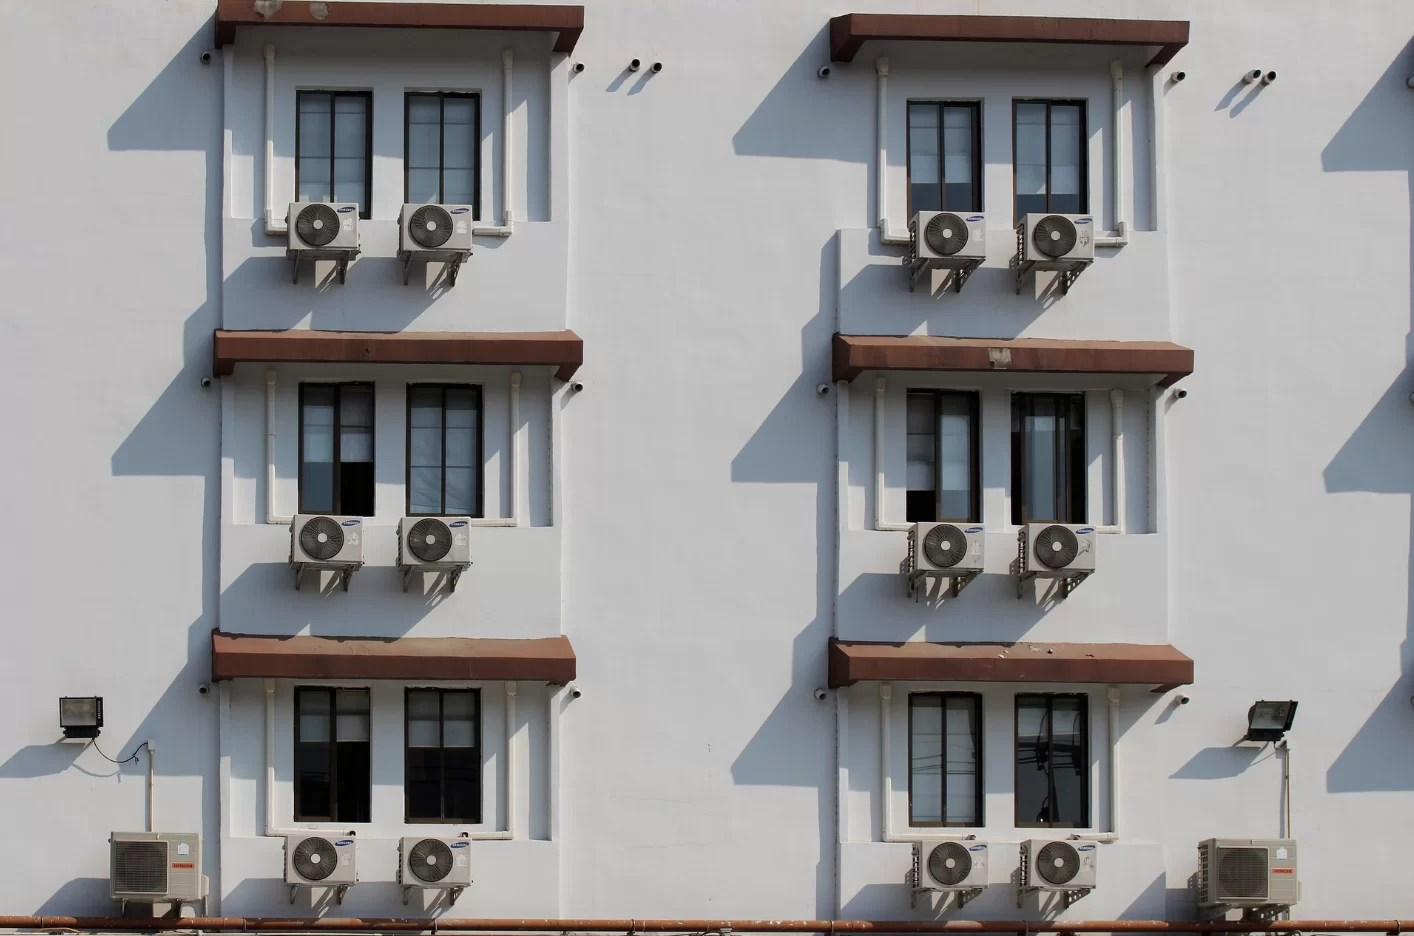 Only one in three houses in Spain has air conditioning - but